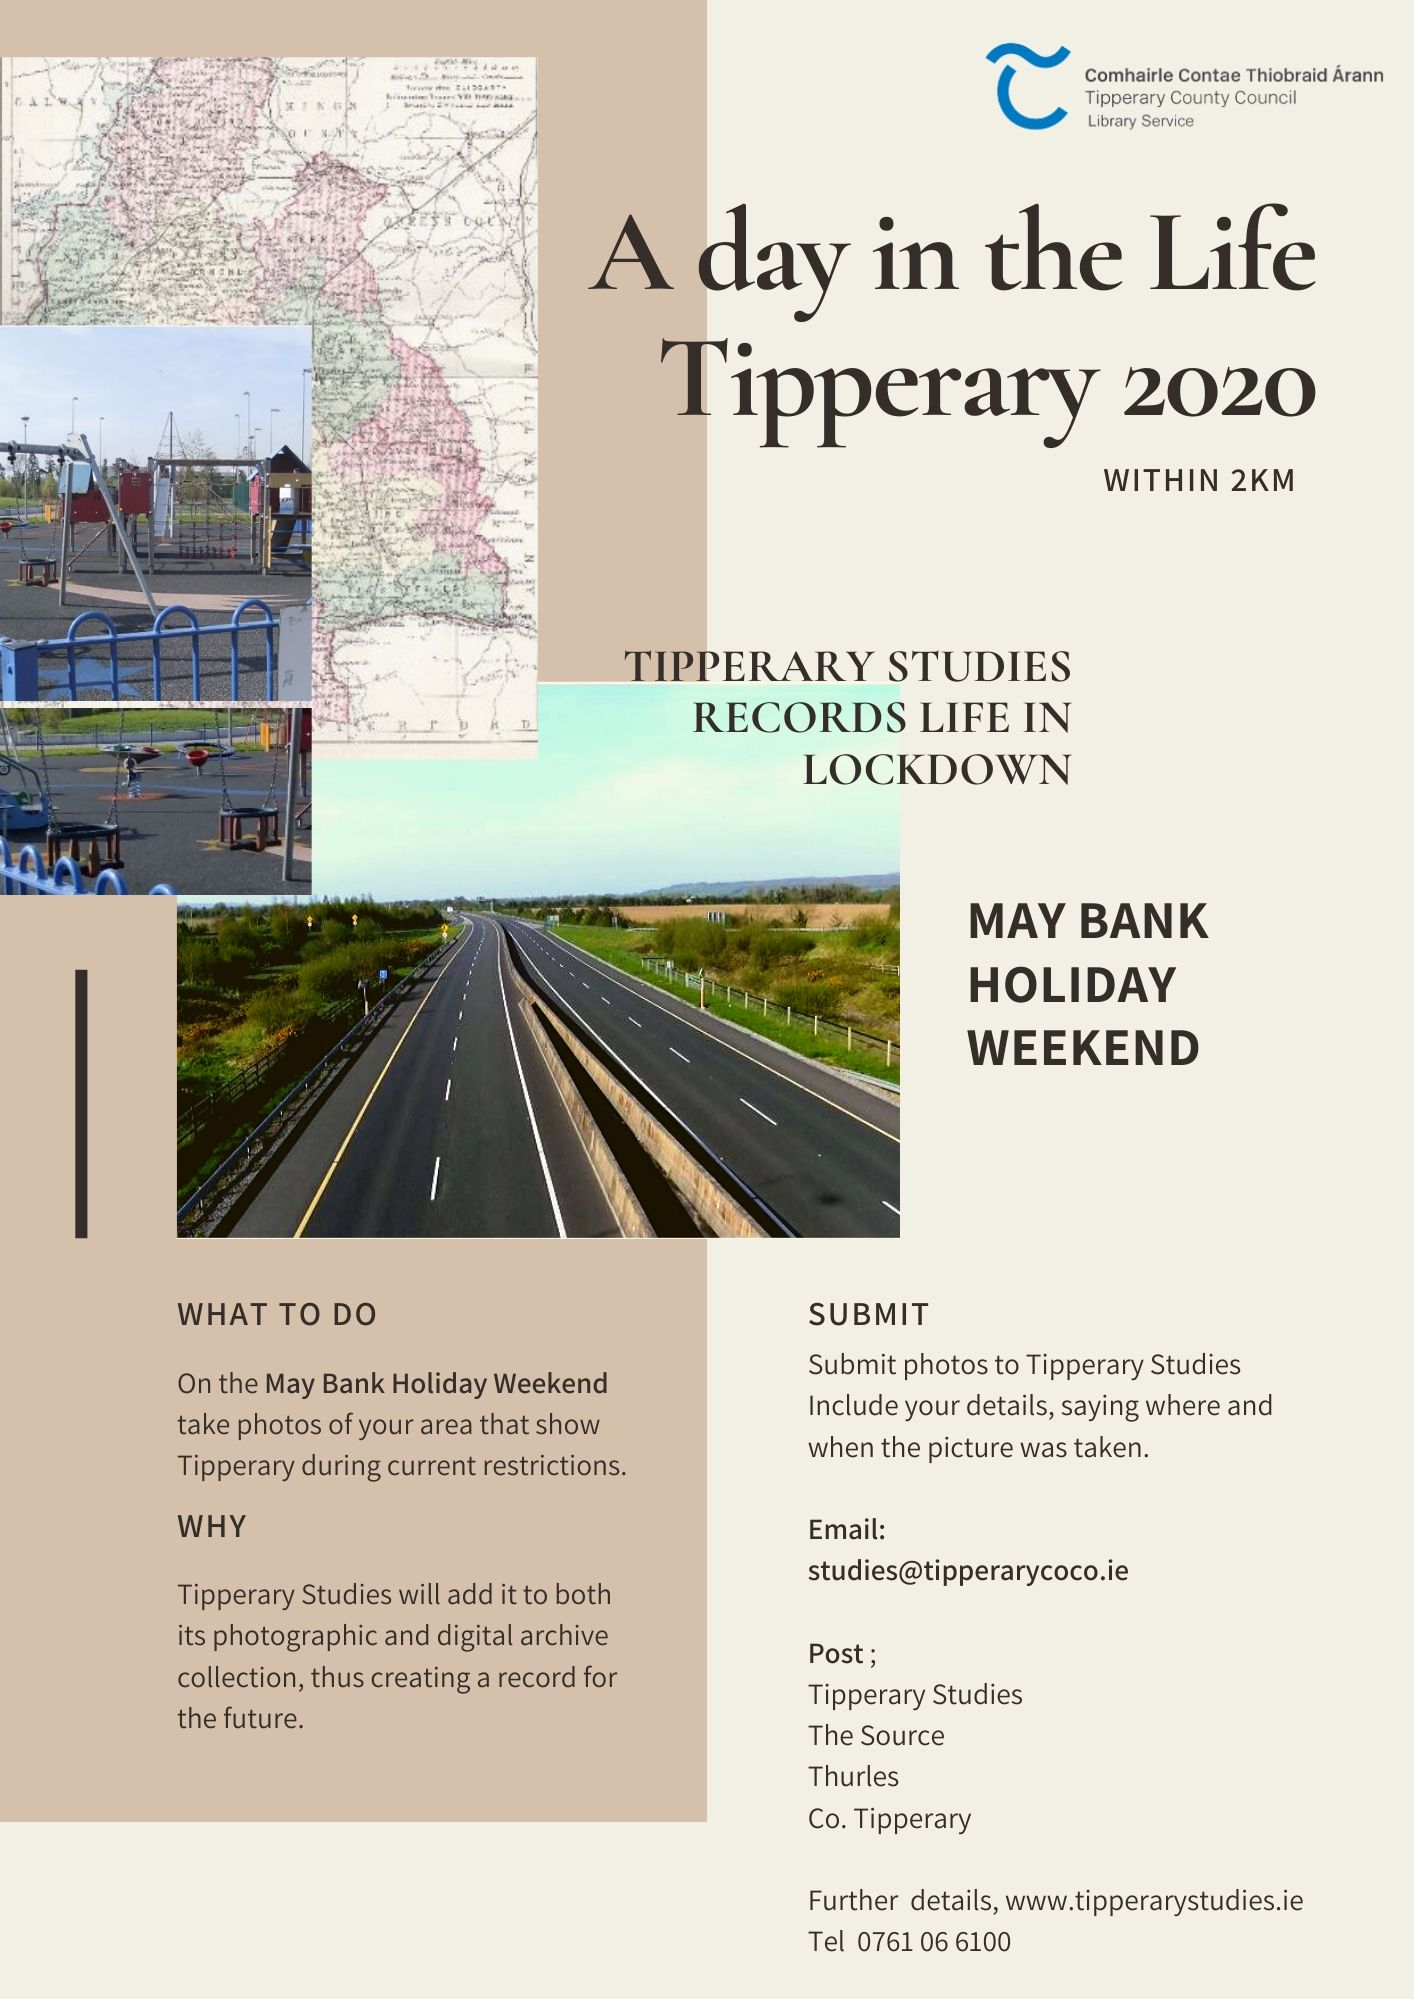 A Day In The Life: Tipperary 2020 Within 2km